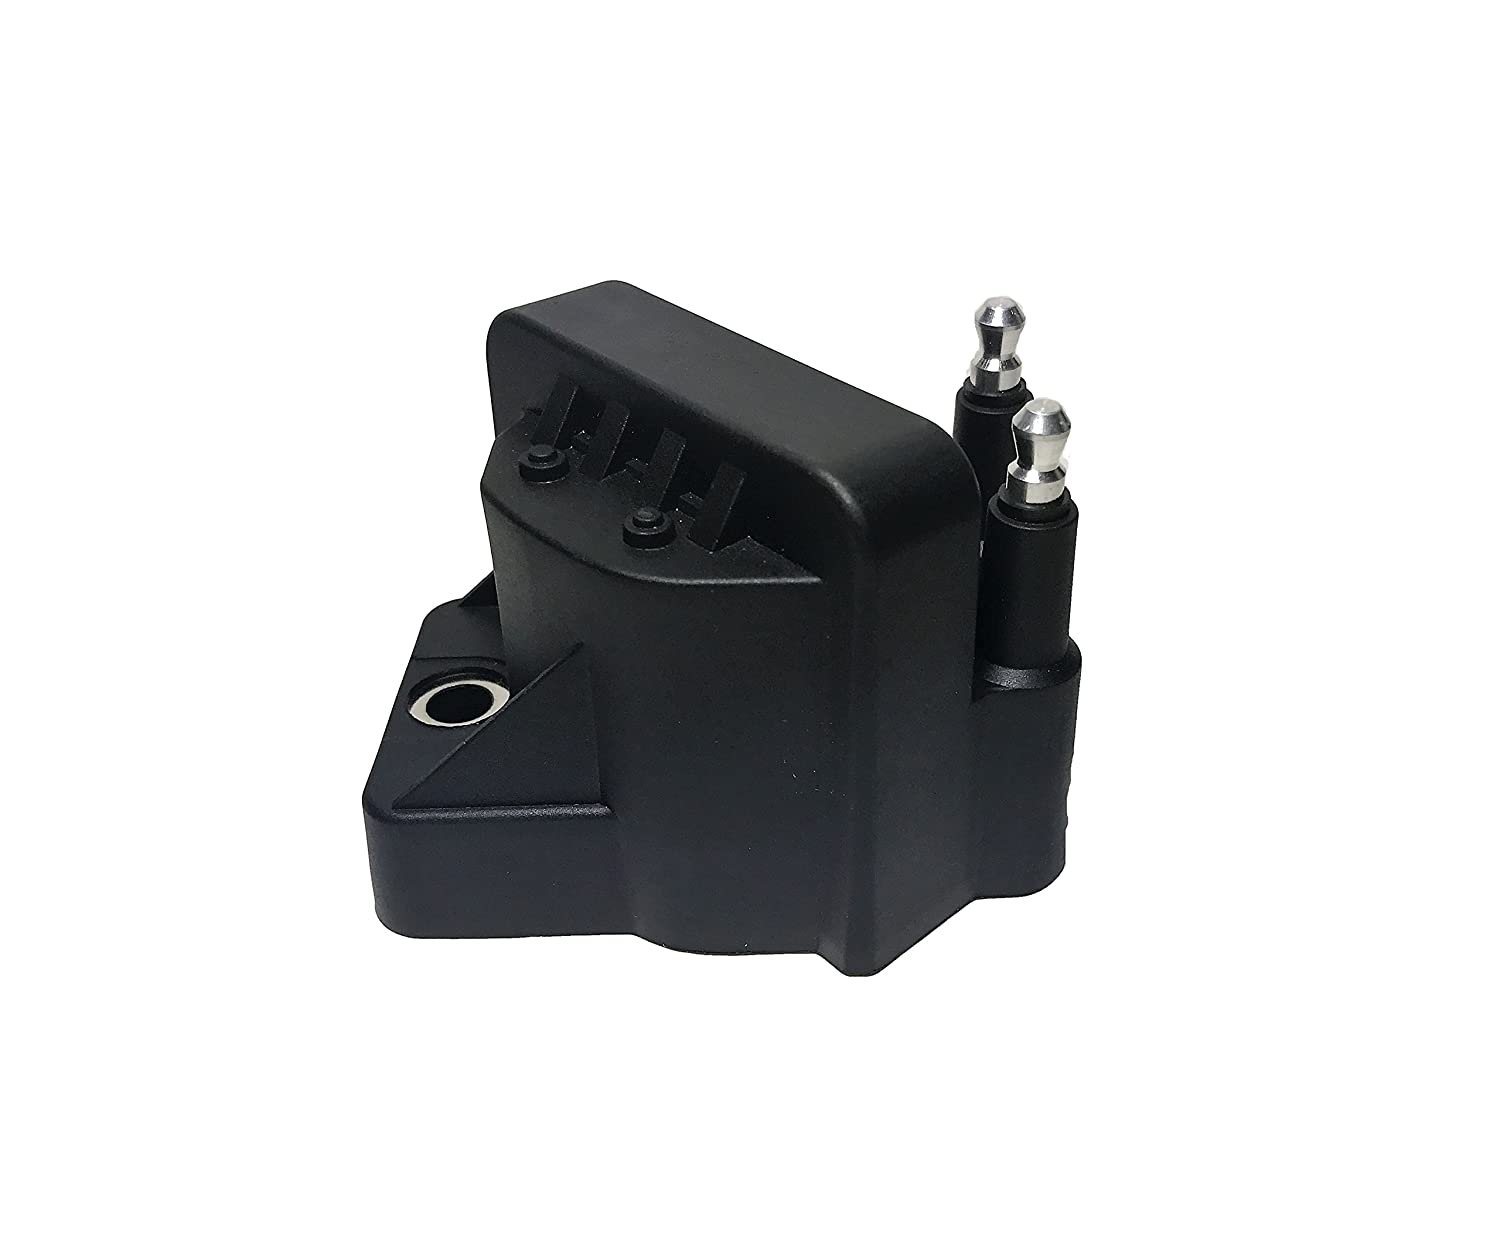 Ignition Coil Pack- Replaces GM# 10467067, 89056799 and ACDelco #E530C - 2000 Malibu Coil, 2002 Cadillac, 1998 Cadillac Deville, Buick, 99 Alero, 2003 Buick Lesabre and more Image